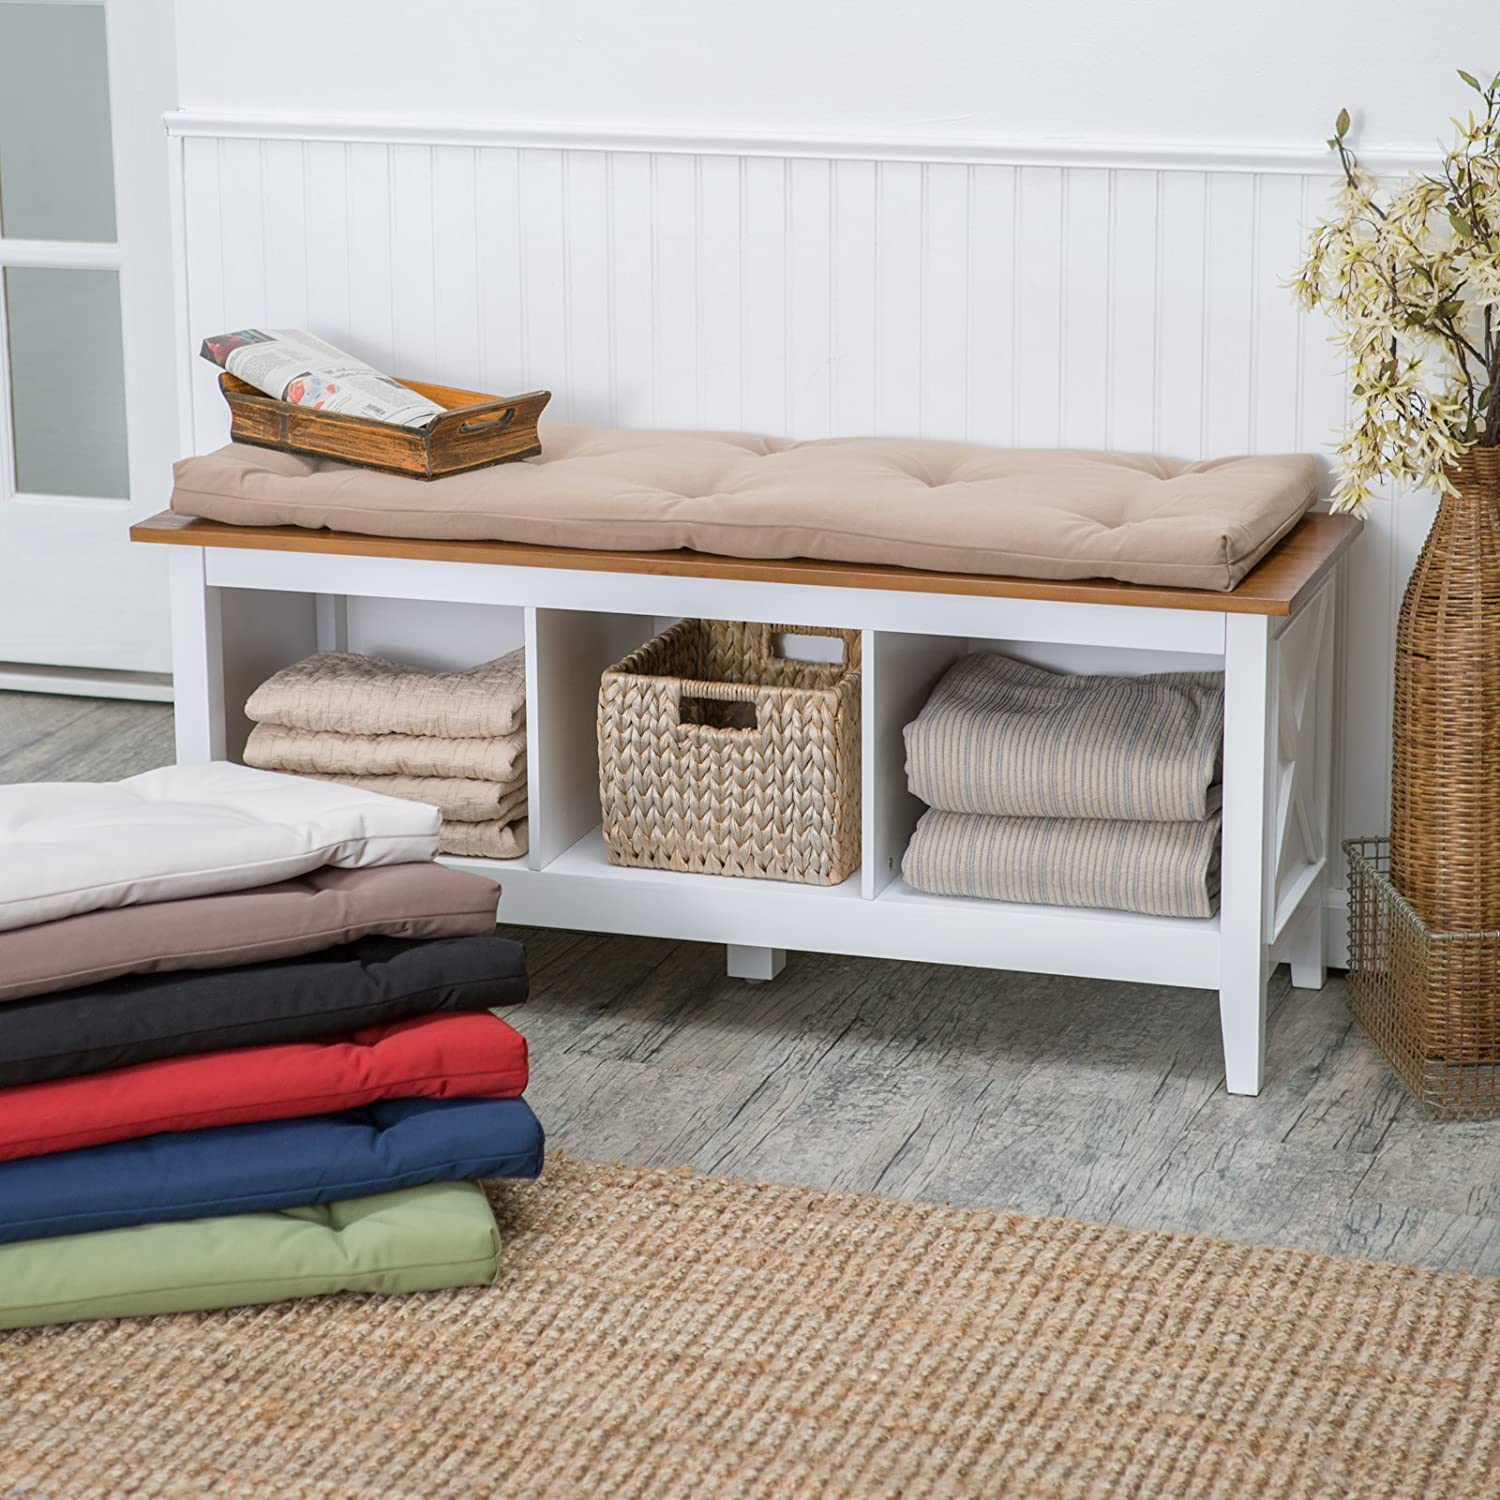 Amazon.com : Deauville 45 x 16 in. Storage Bench Cushion : Throw ...